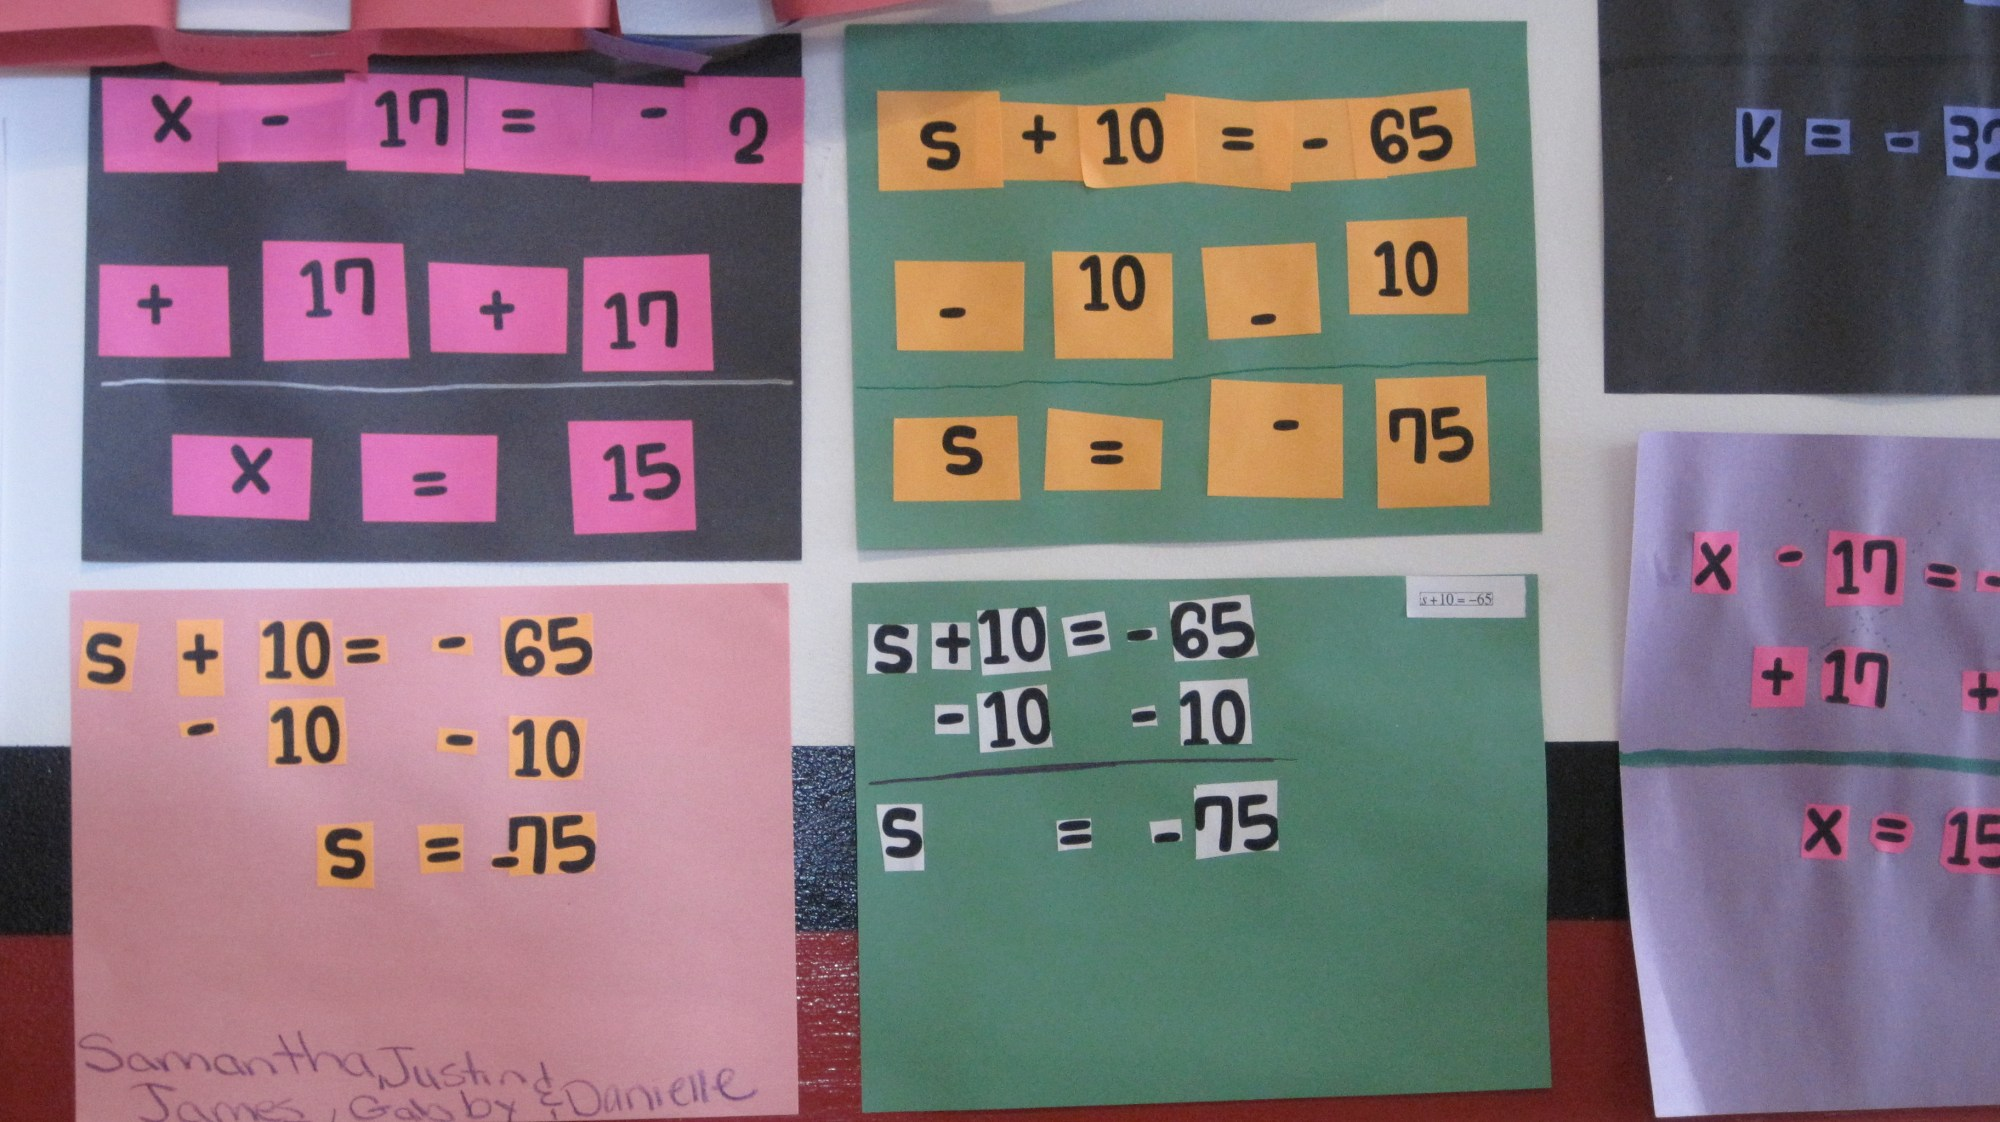 hight resolution of Solving One-Step Equations Cut and Paste Activity   tothesquareinch